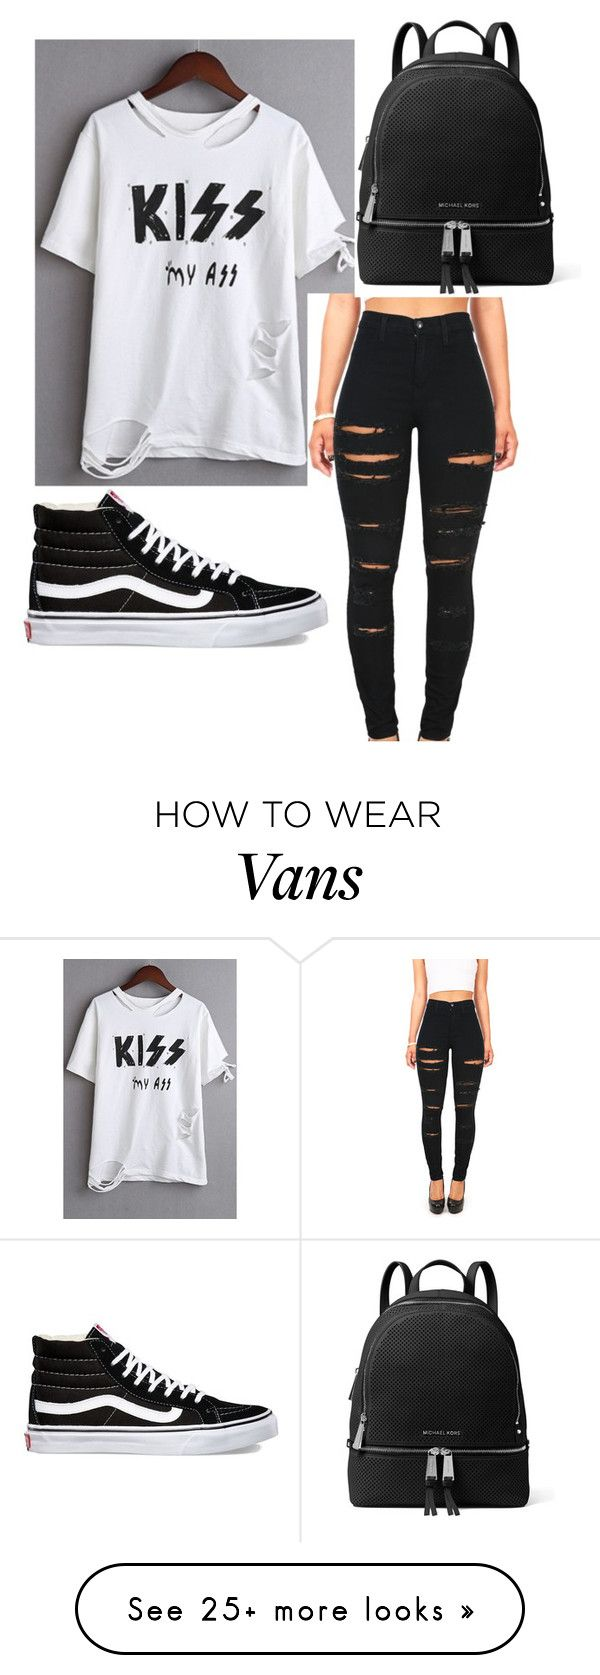 """Day off"" by barrystilinskiqueen on Polyvore featuring WithChic, Vibrant, Vans and MICHAEL Michael Kors"